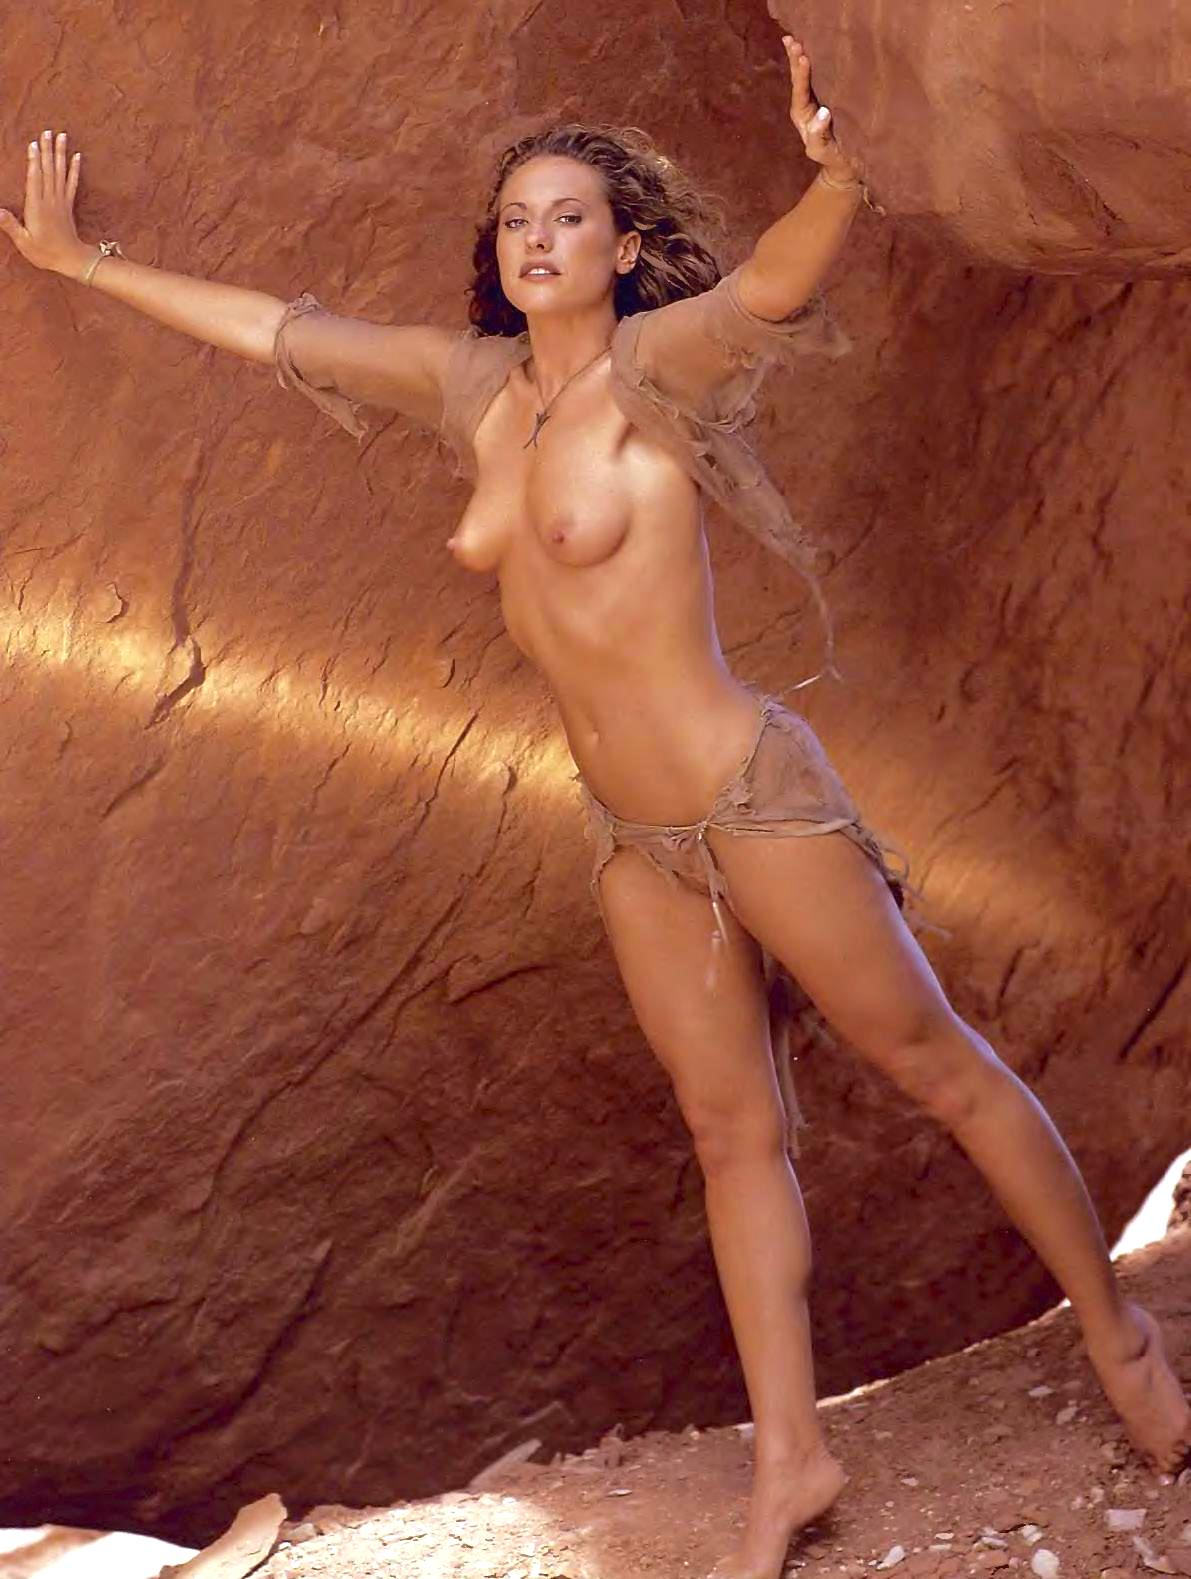 have quickly thought russian girl strip shows are not right